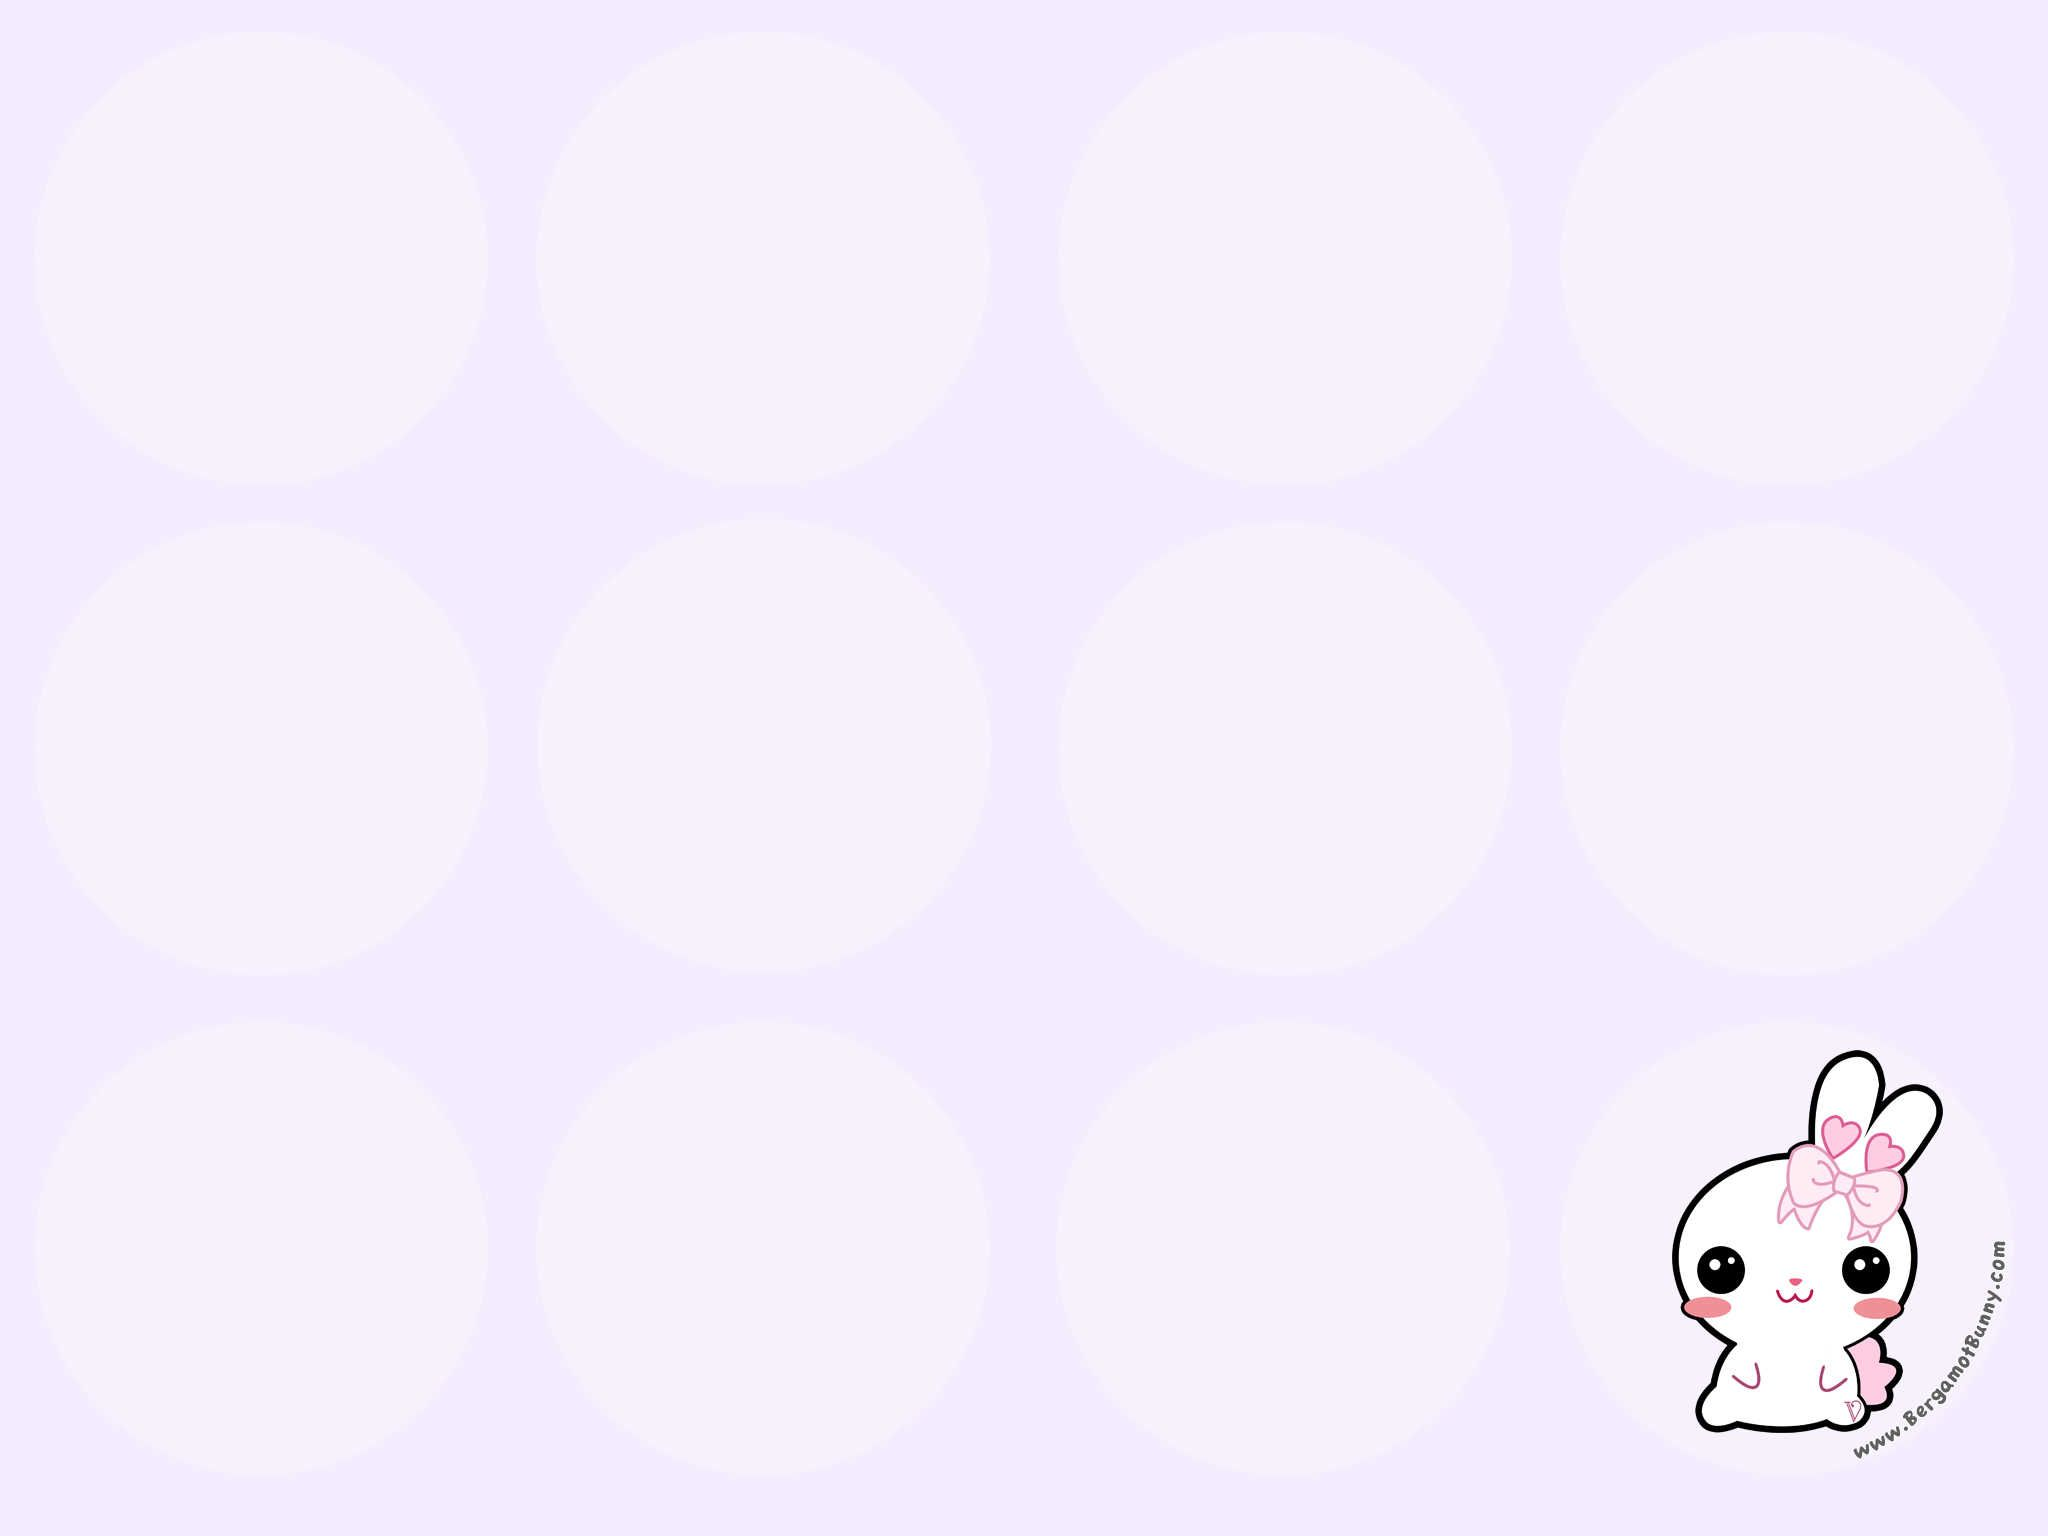 cute simple backgrounds - http://hdwallpaper/cute-simple